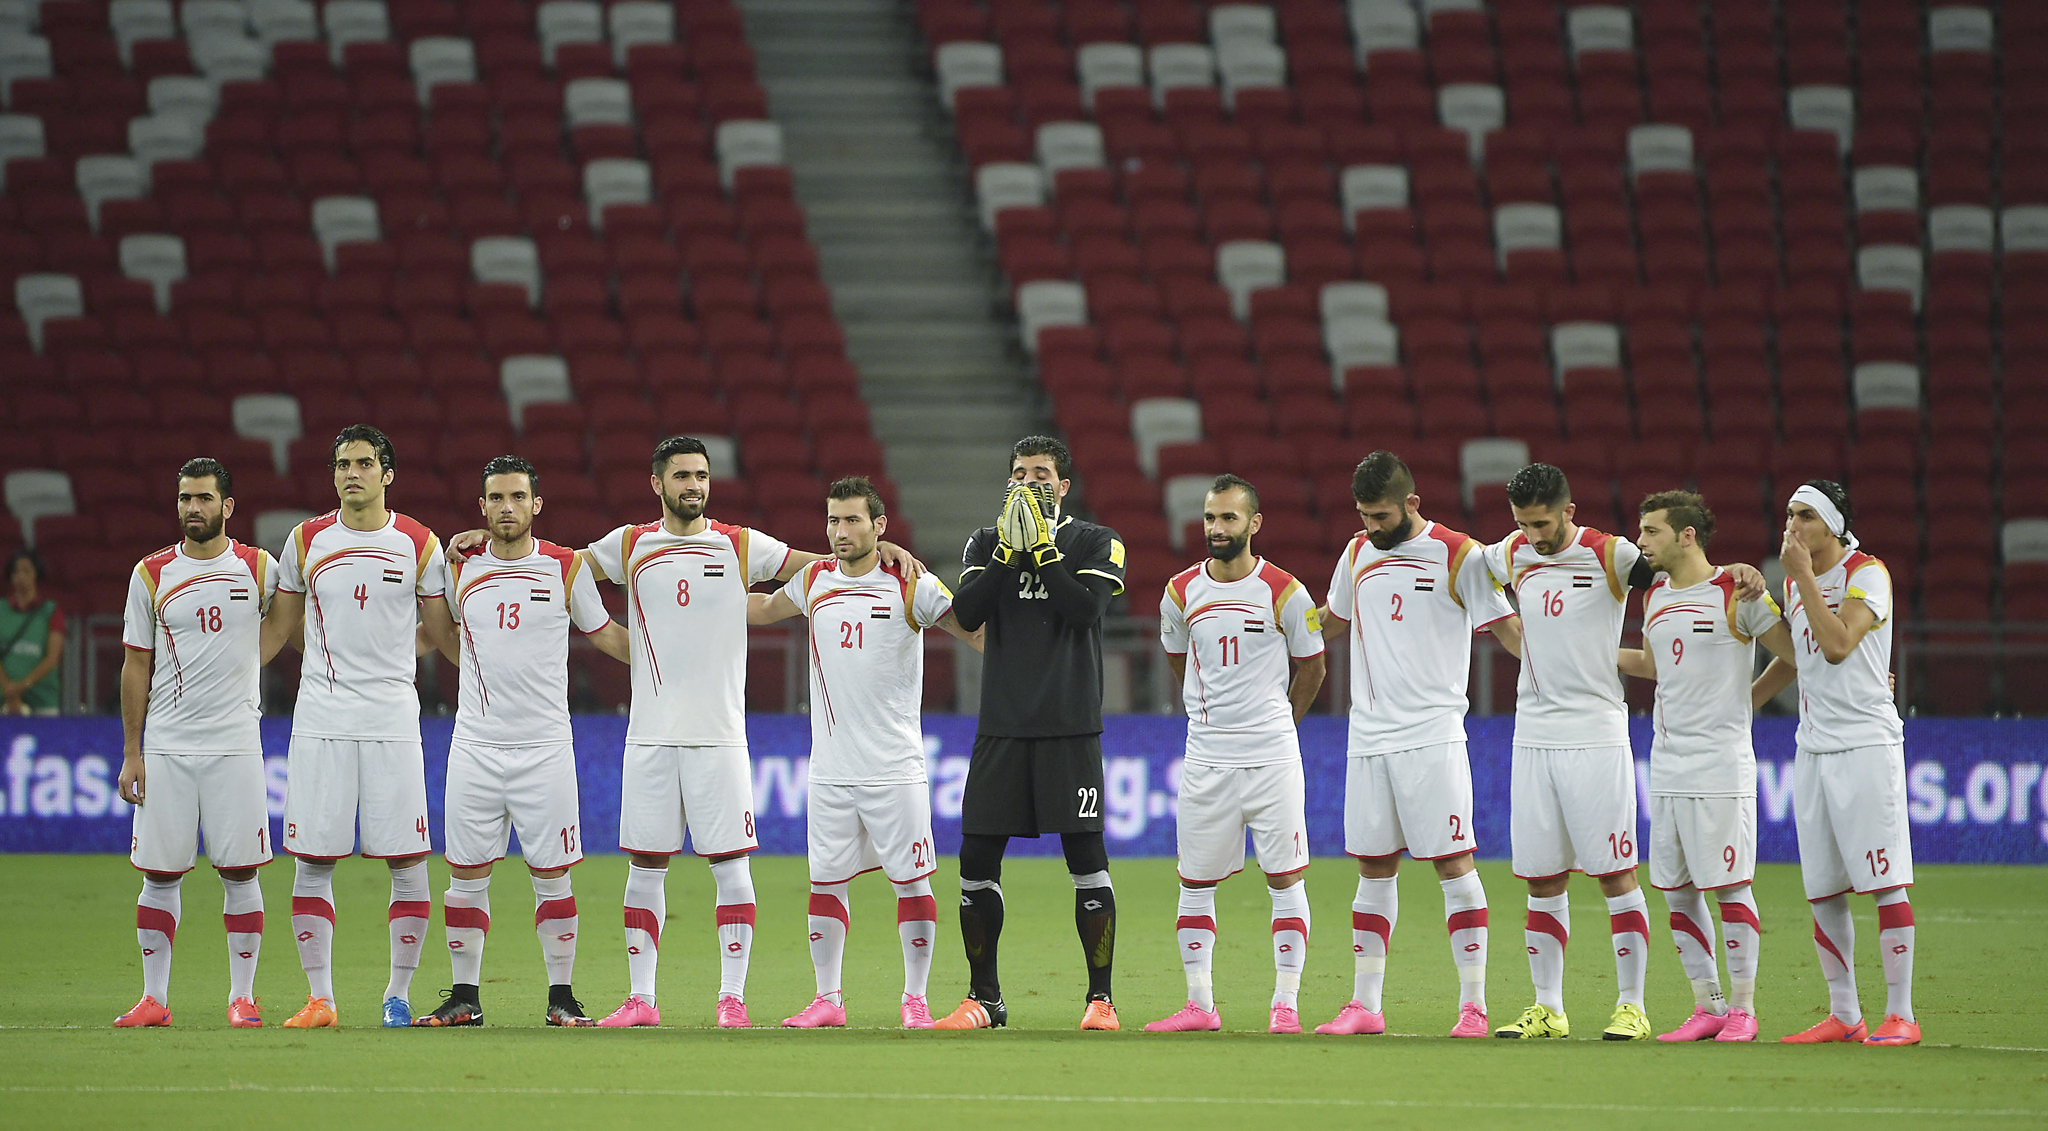 The national soccer team of Syria observes a moment of silence for last week's attacks in Paris ahead of their second round soccer match of regional qualifiers against Singapore for the 2018 World Cup, Tuesday, Nov. 17, 2015 in Singapore. WLD(AP Photo/Joseph Nair)